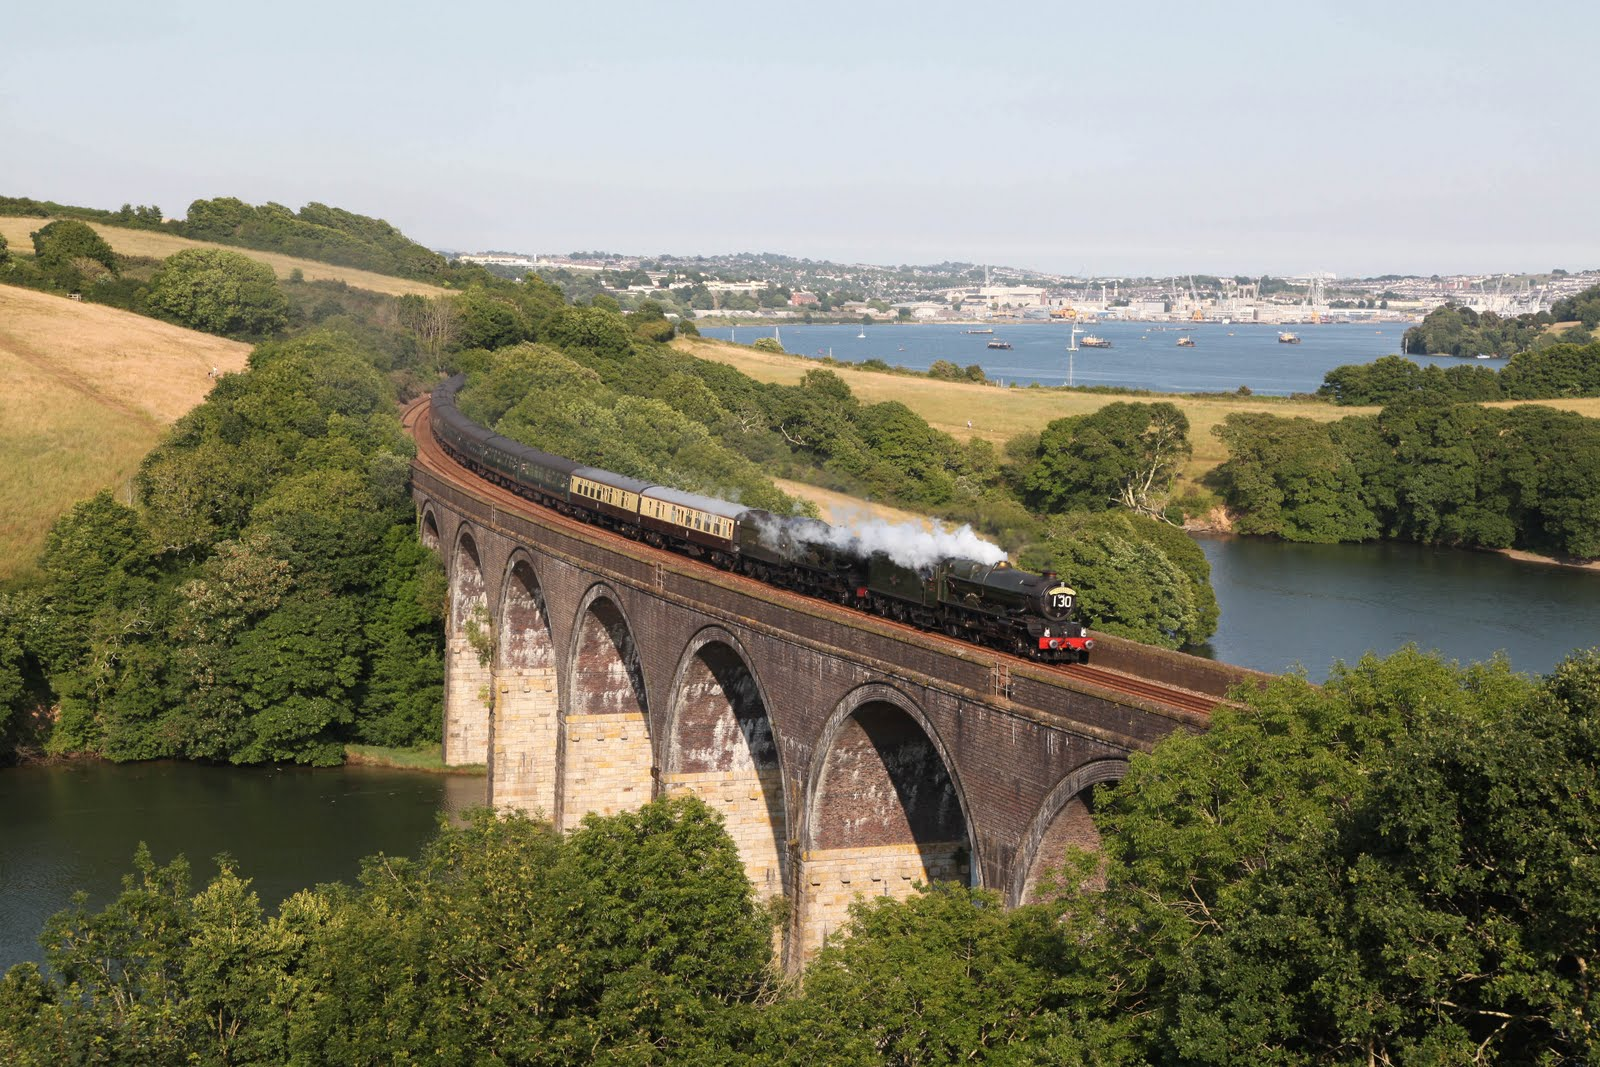 http://1.bp.blogspot.com/_0y9fxTUPzEo/TCy6w3yv8AI/AAAAAAAANUU/zYbI0Z1mHjI/s1600/Cornish+Riviera+Steam+Train+Forder+Viaduct+Saltash+by+Bernard+Mills.JPG